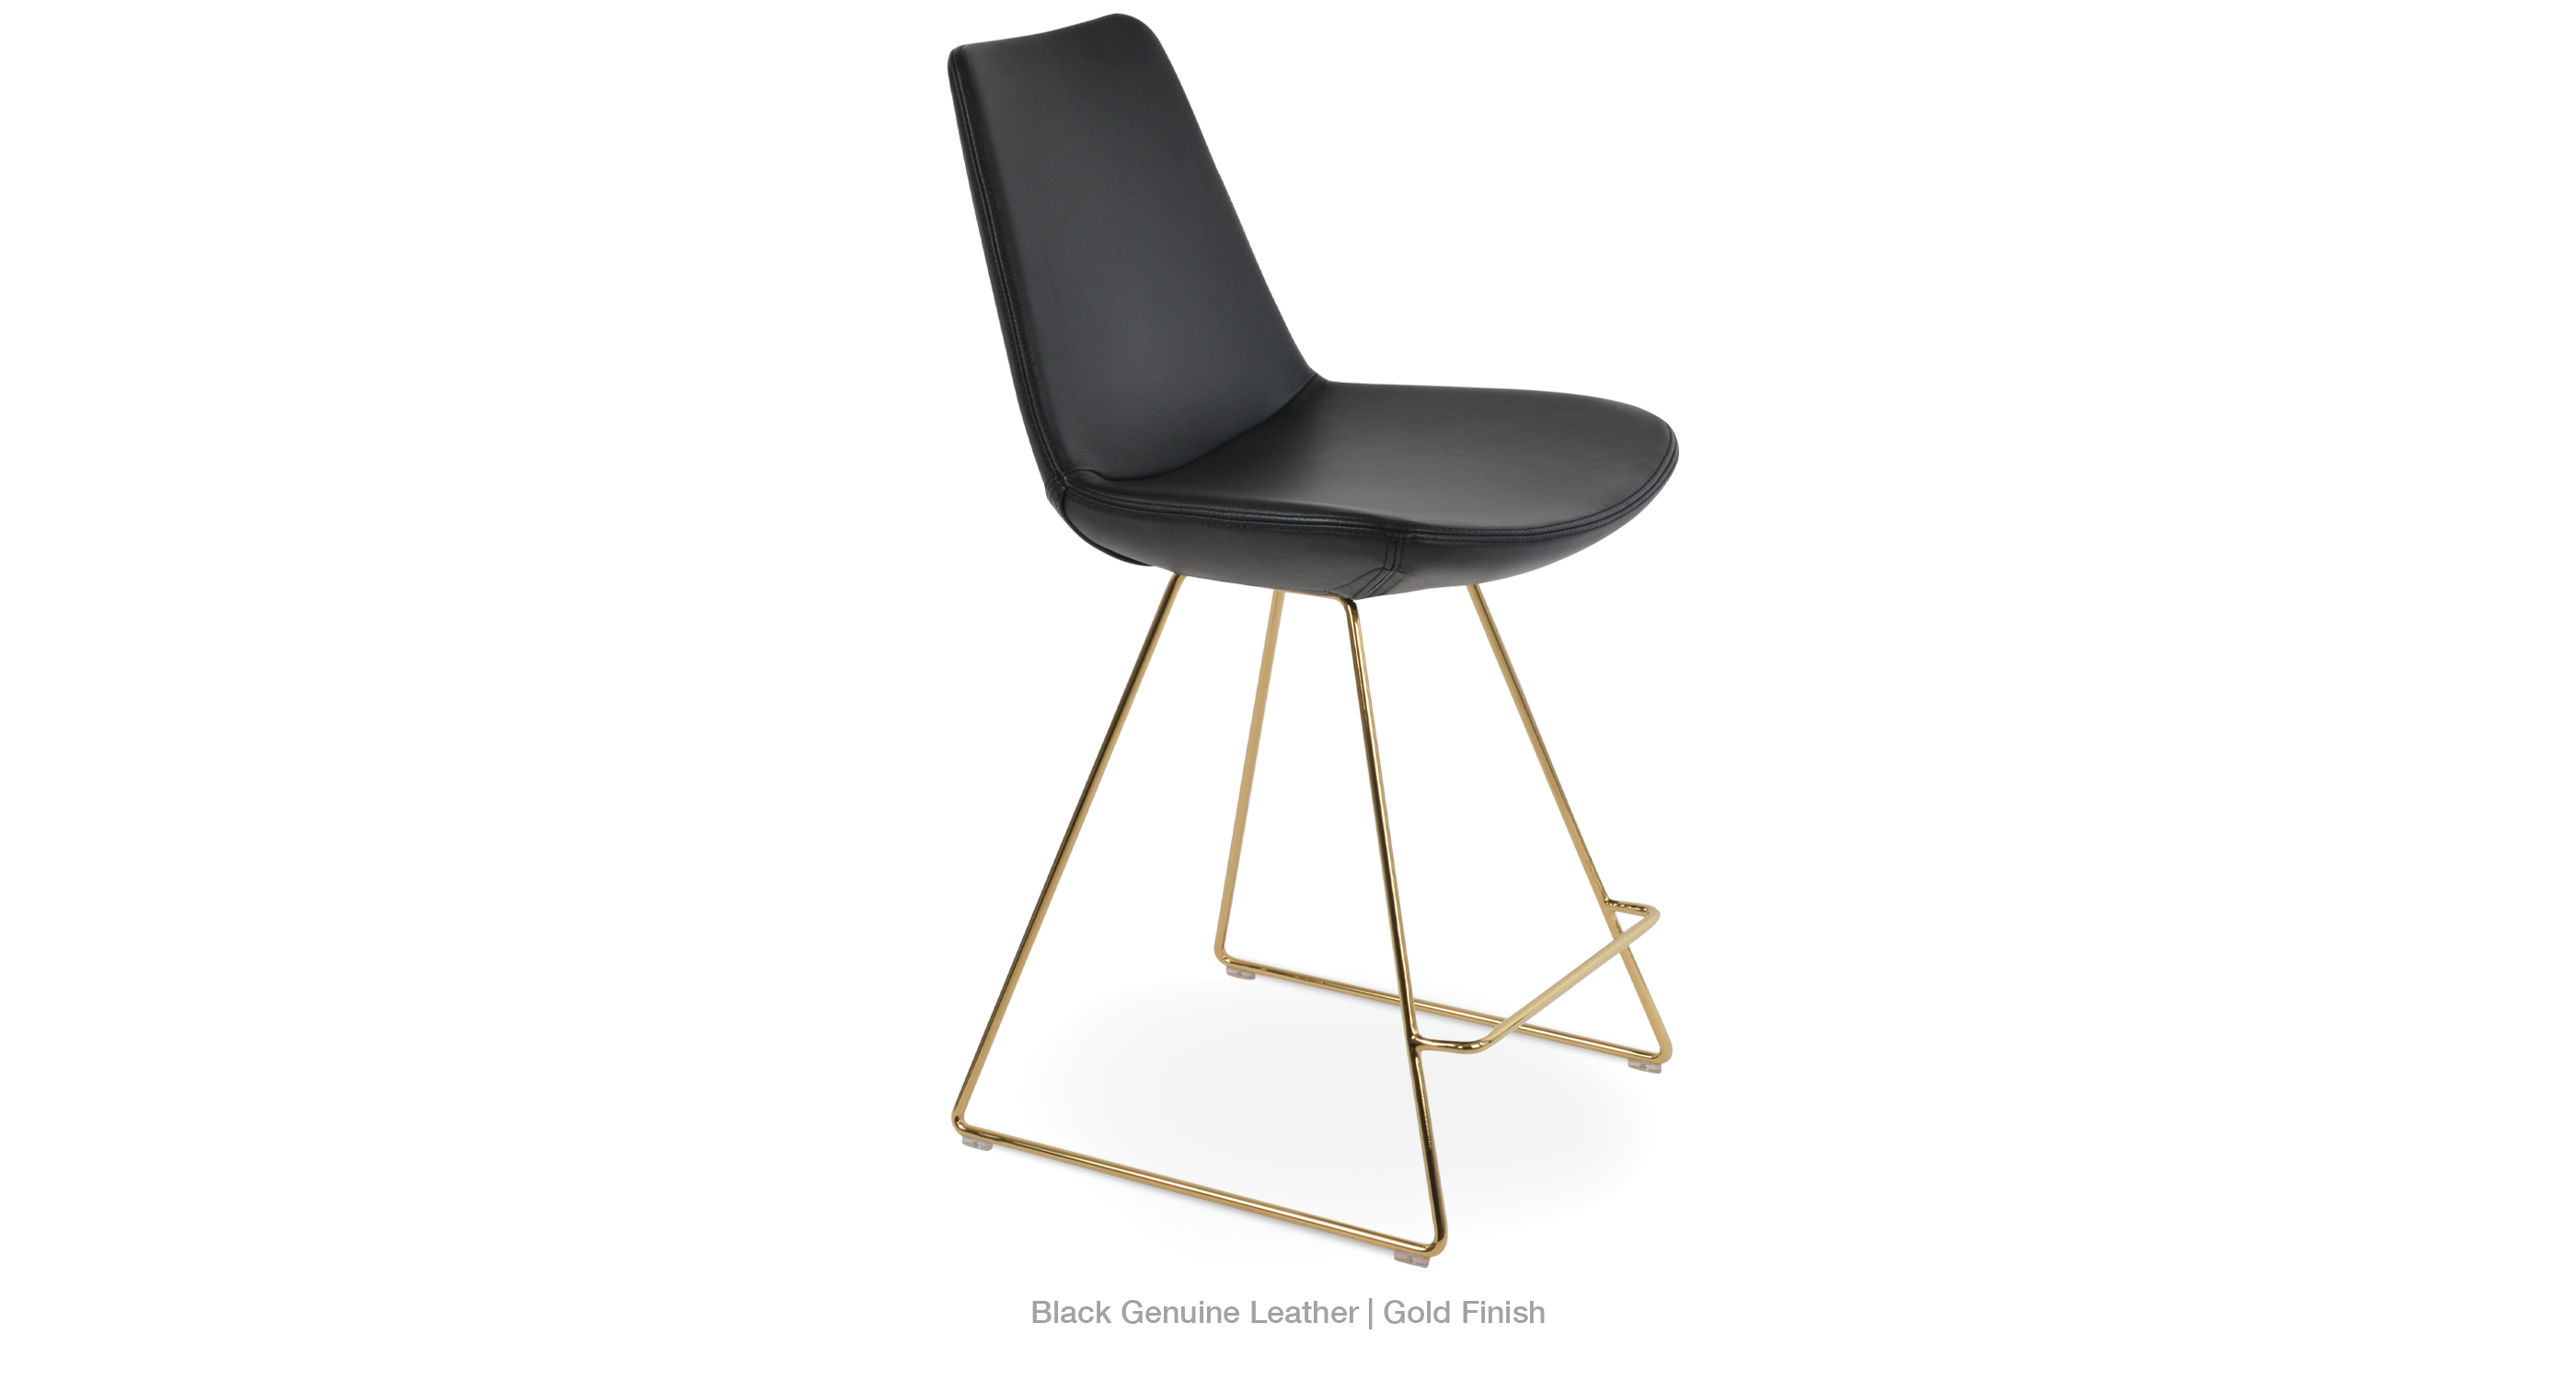 2020 03 22 Eiffel Wire Counter Black Leather Gold